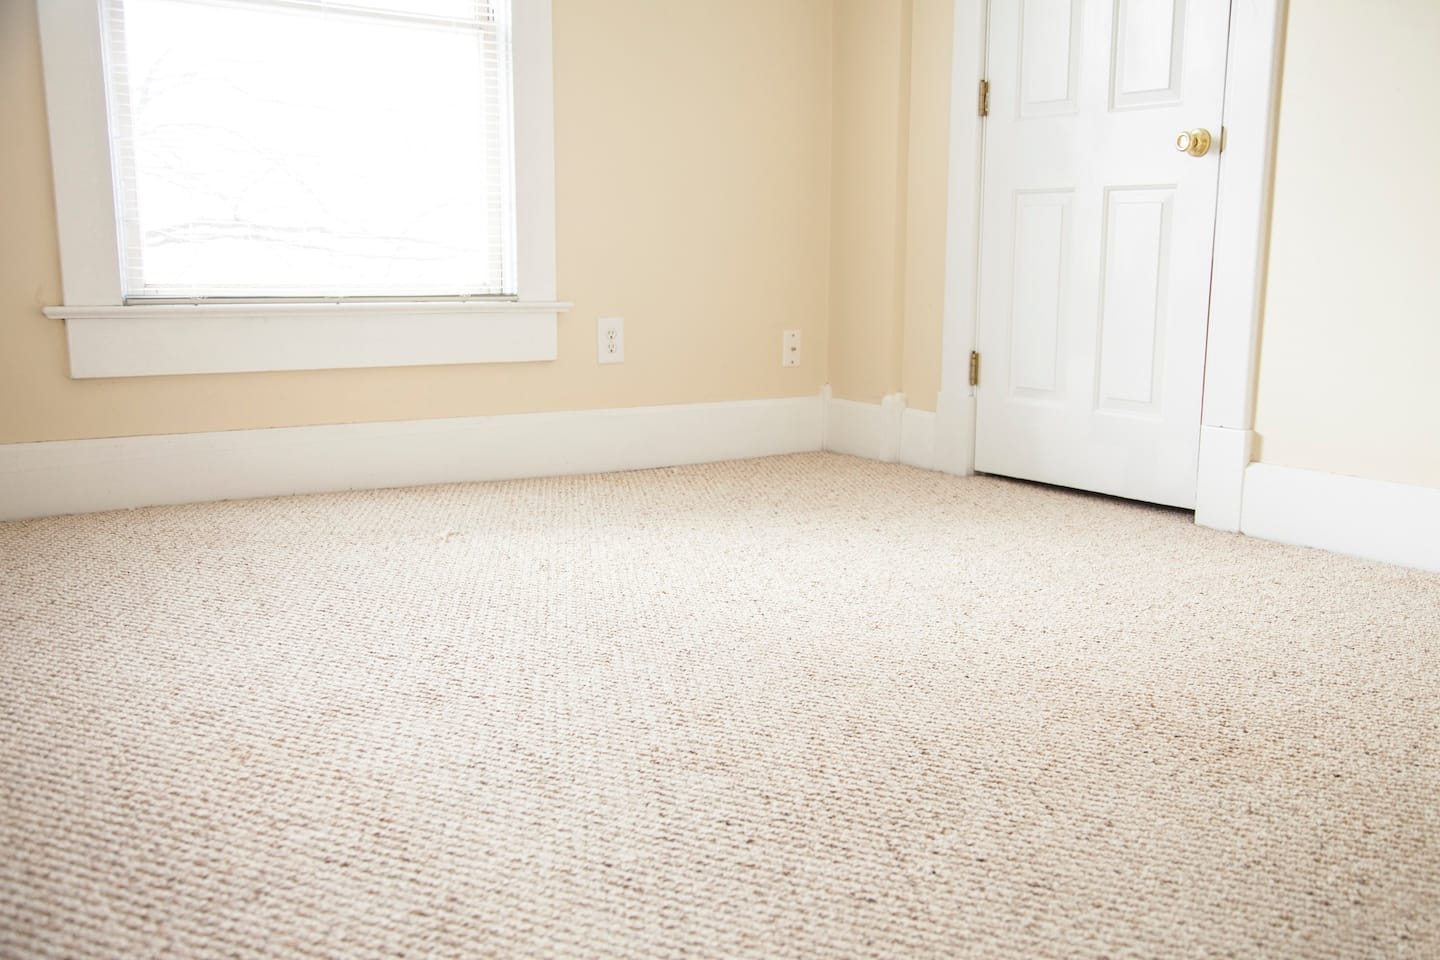 Best Carpet To Buy For Bedroom Creative Property 6 signs you need to replace your carpet | angie's list